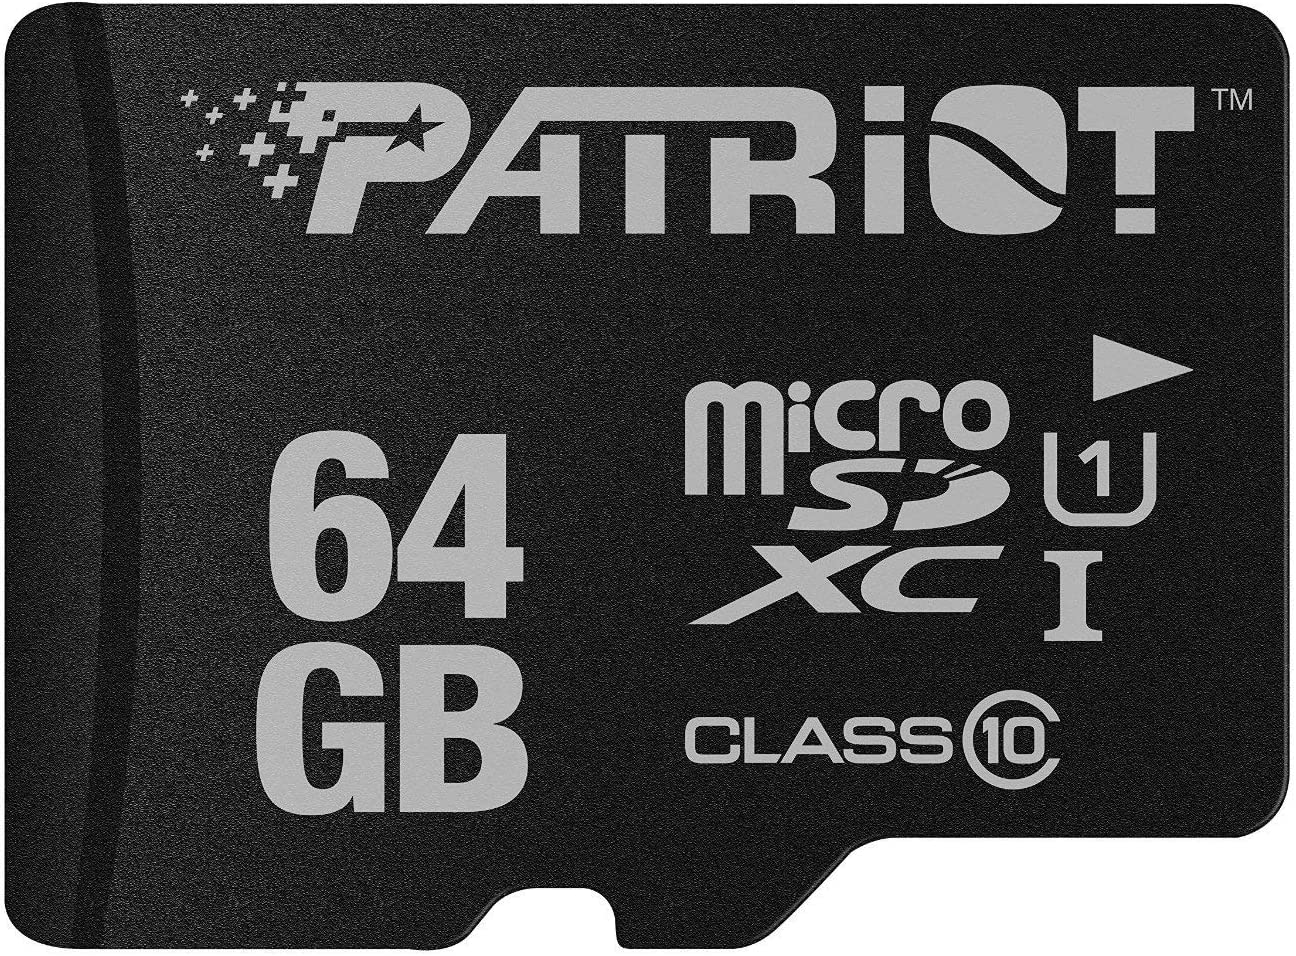 Patriot LX Series 64GB High Speed Micro SDXC Class 10 UHS-I Transfer Speeds For Action Cameras, Phones, Tablets, and PCs